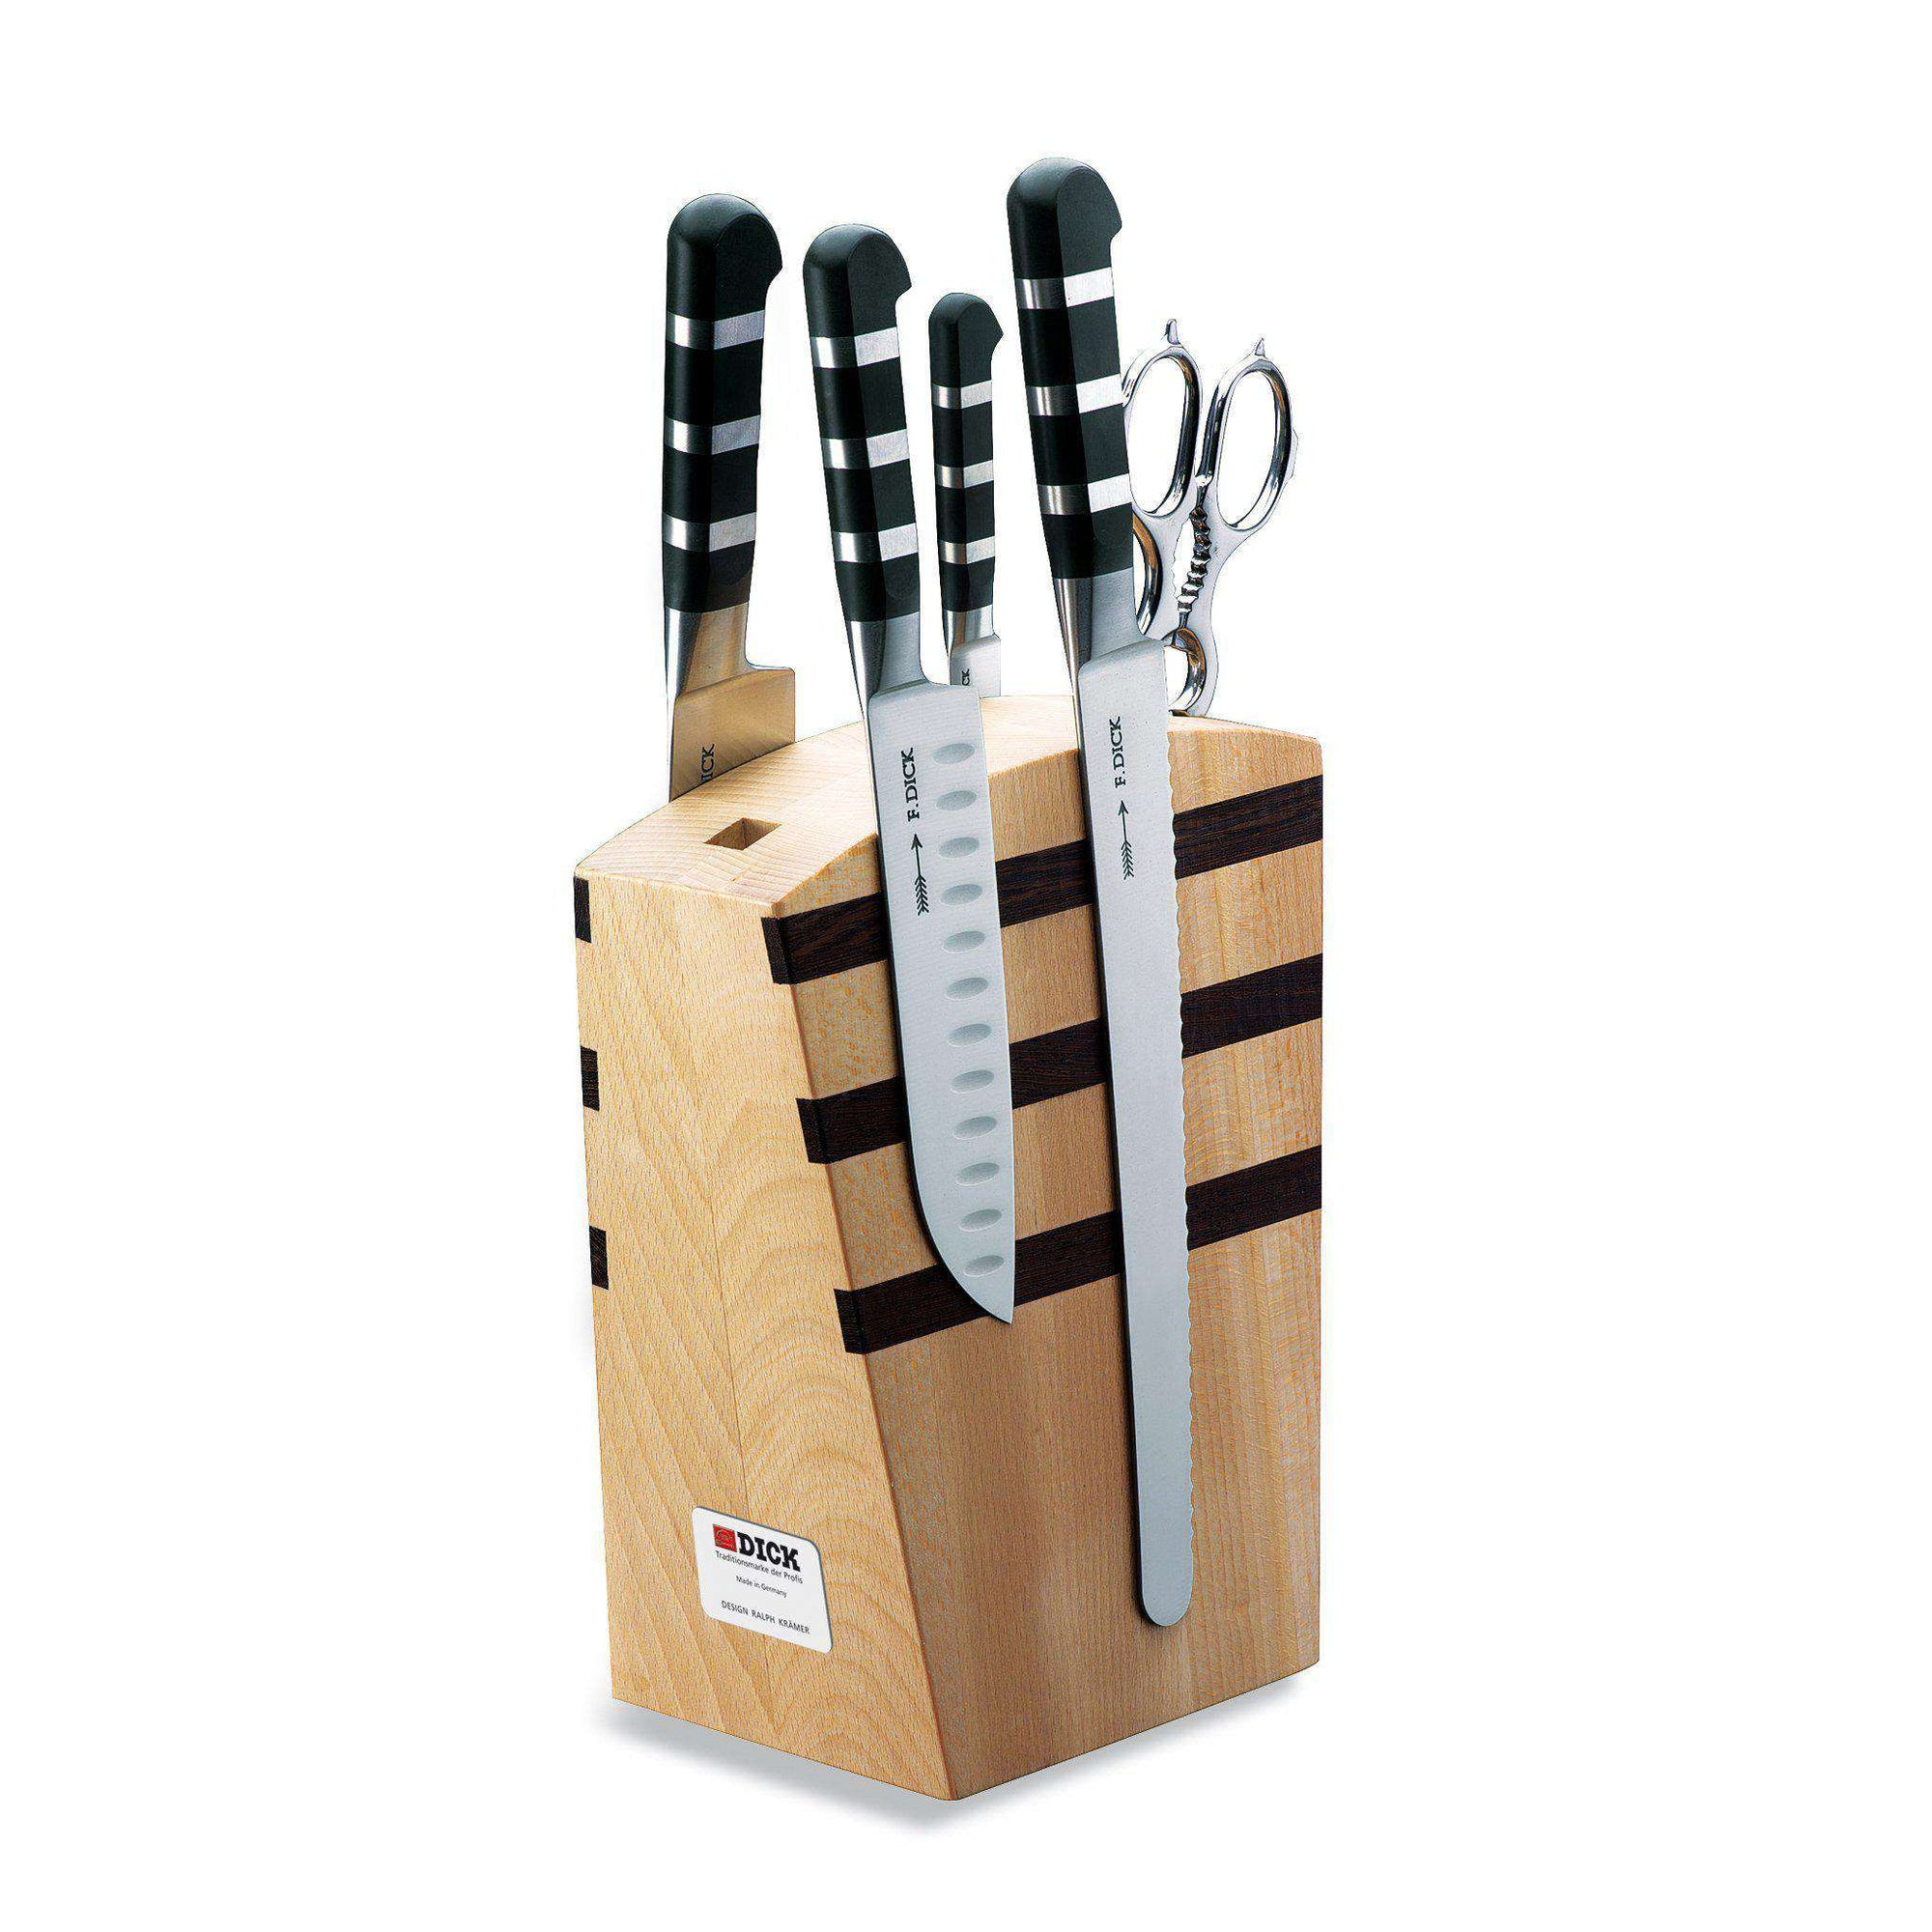 F DICK 1905 Series Magnetic Wood Knife block 5 Pc Set - House of Knives